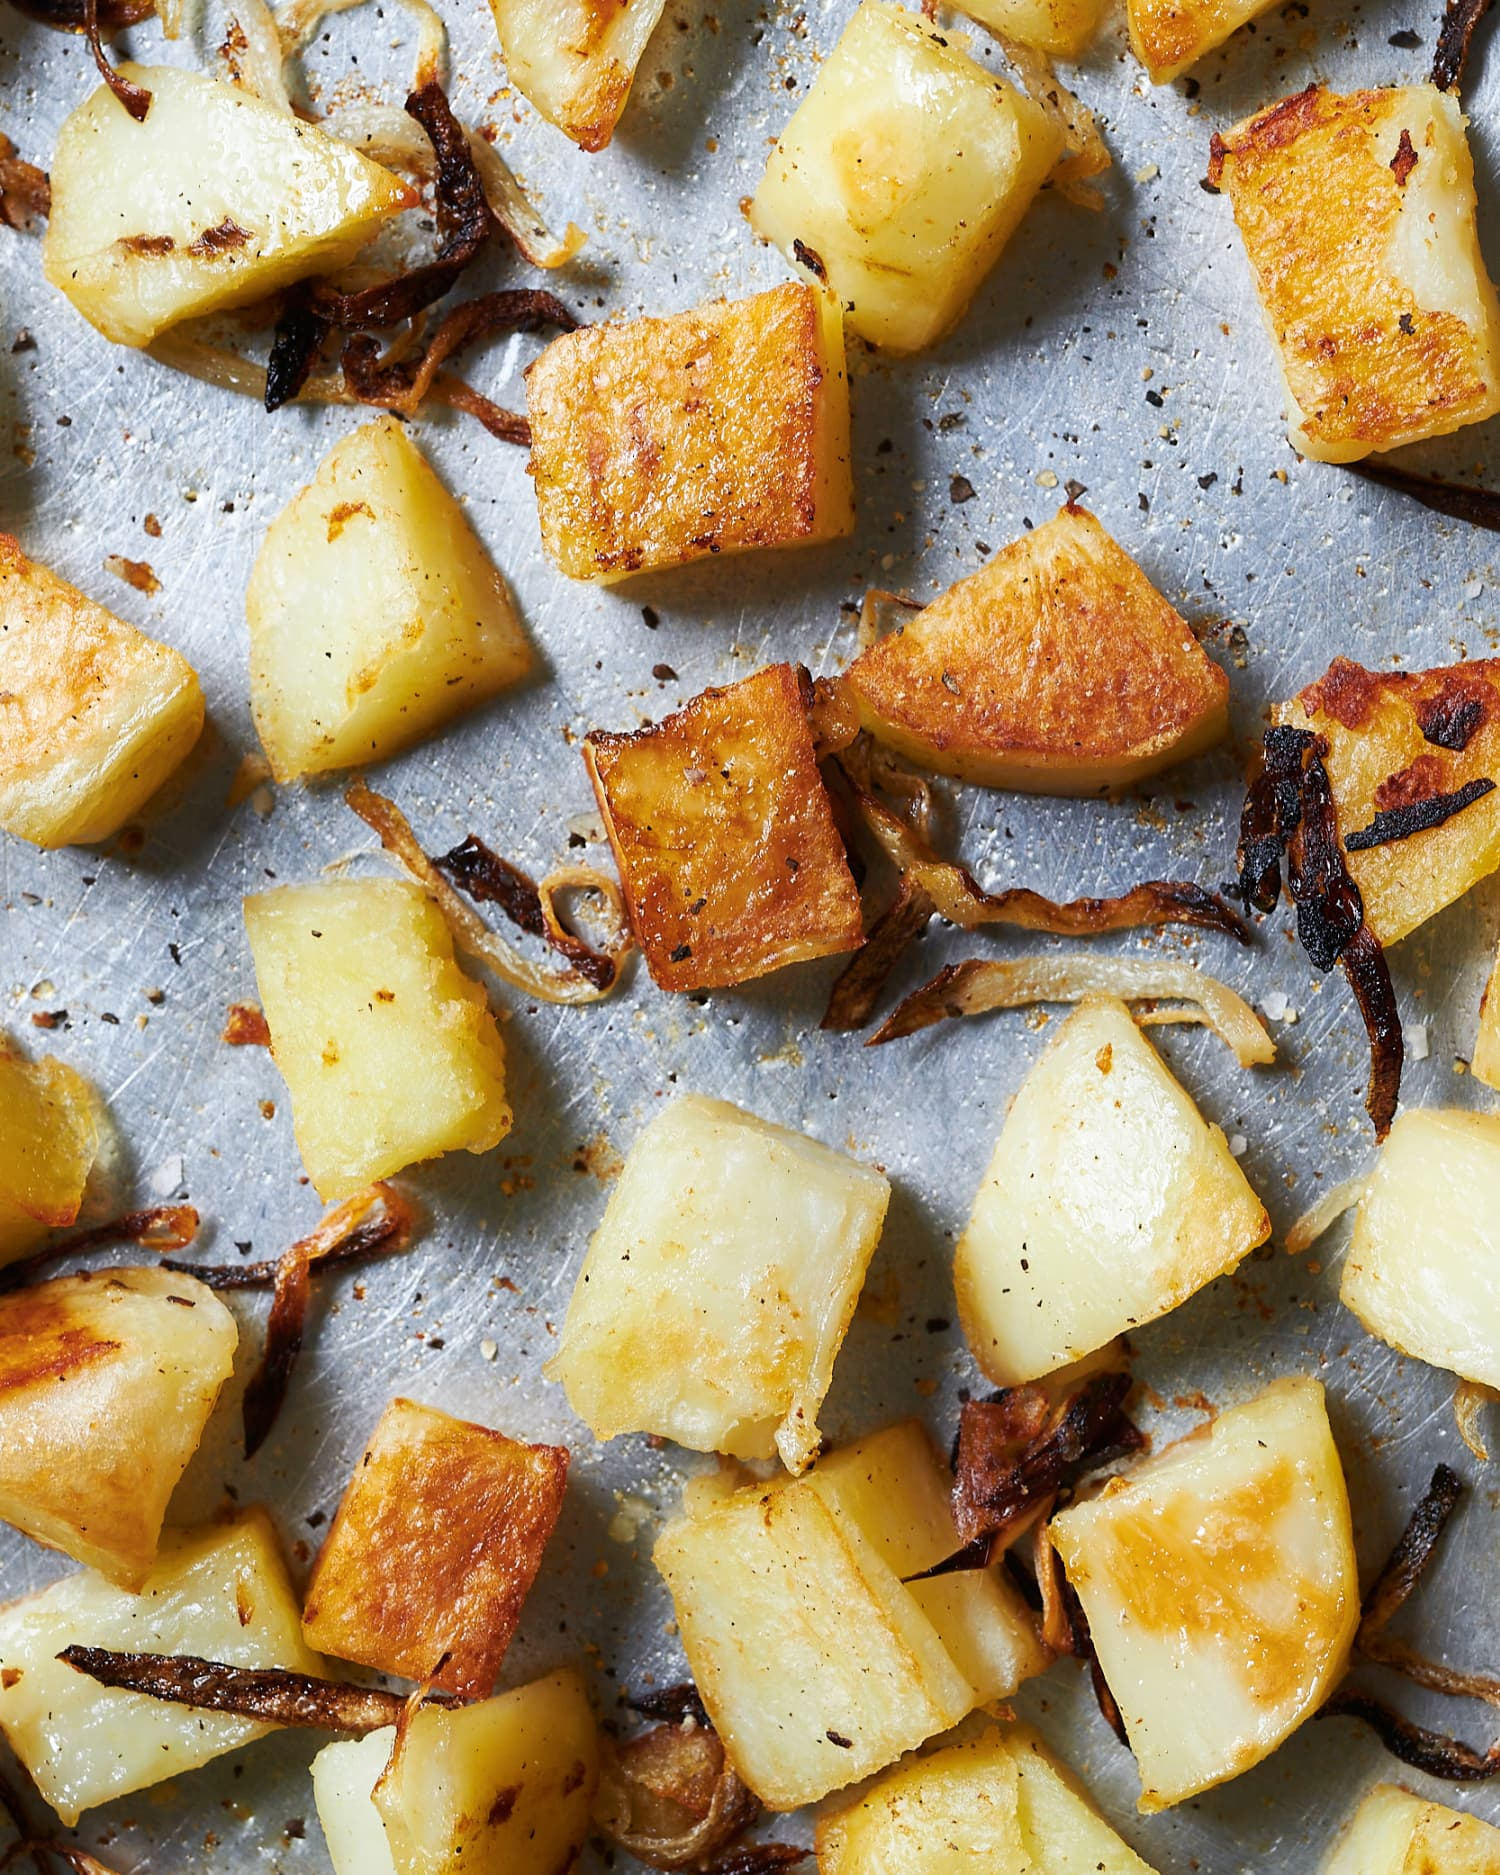 This Simple Technique Makes the Crispiest Potatoes with Creamy, Fluffy Insides